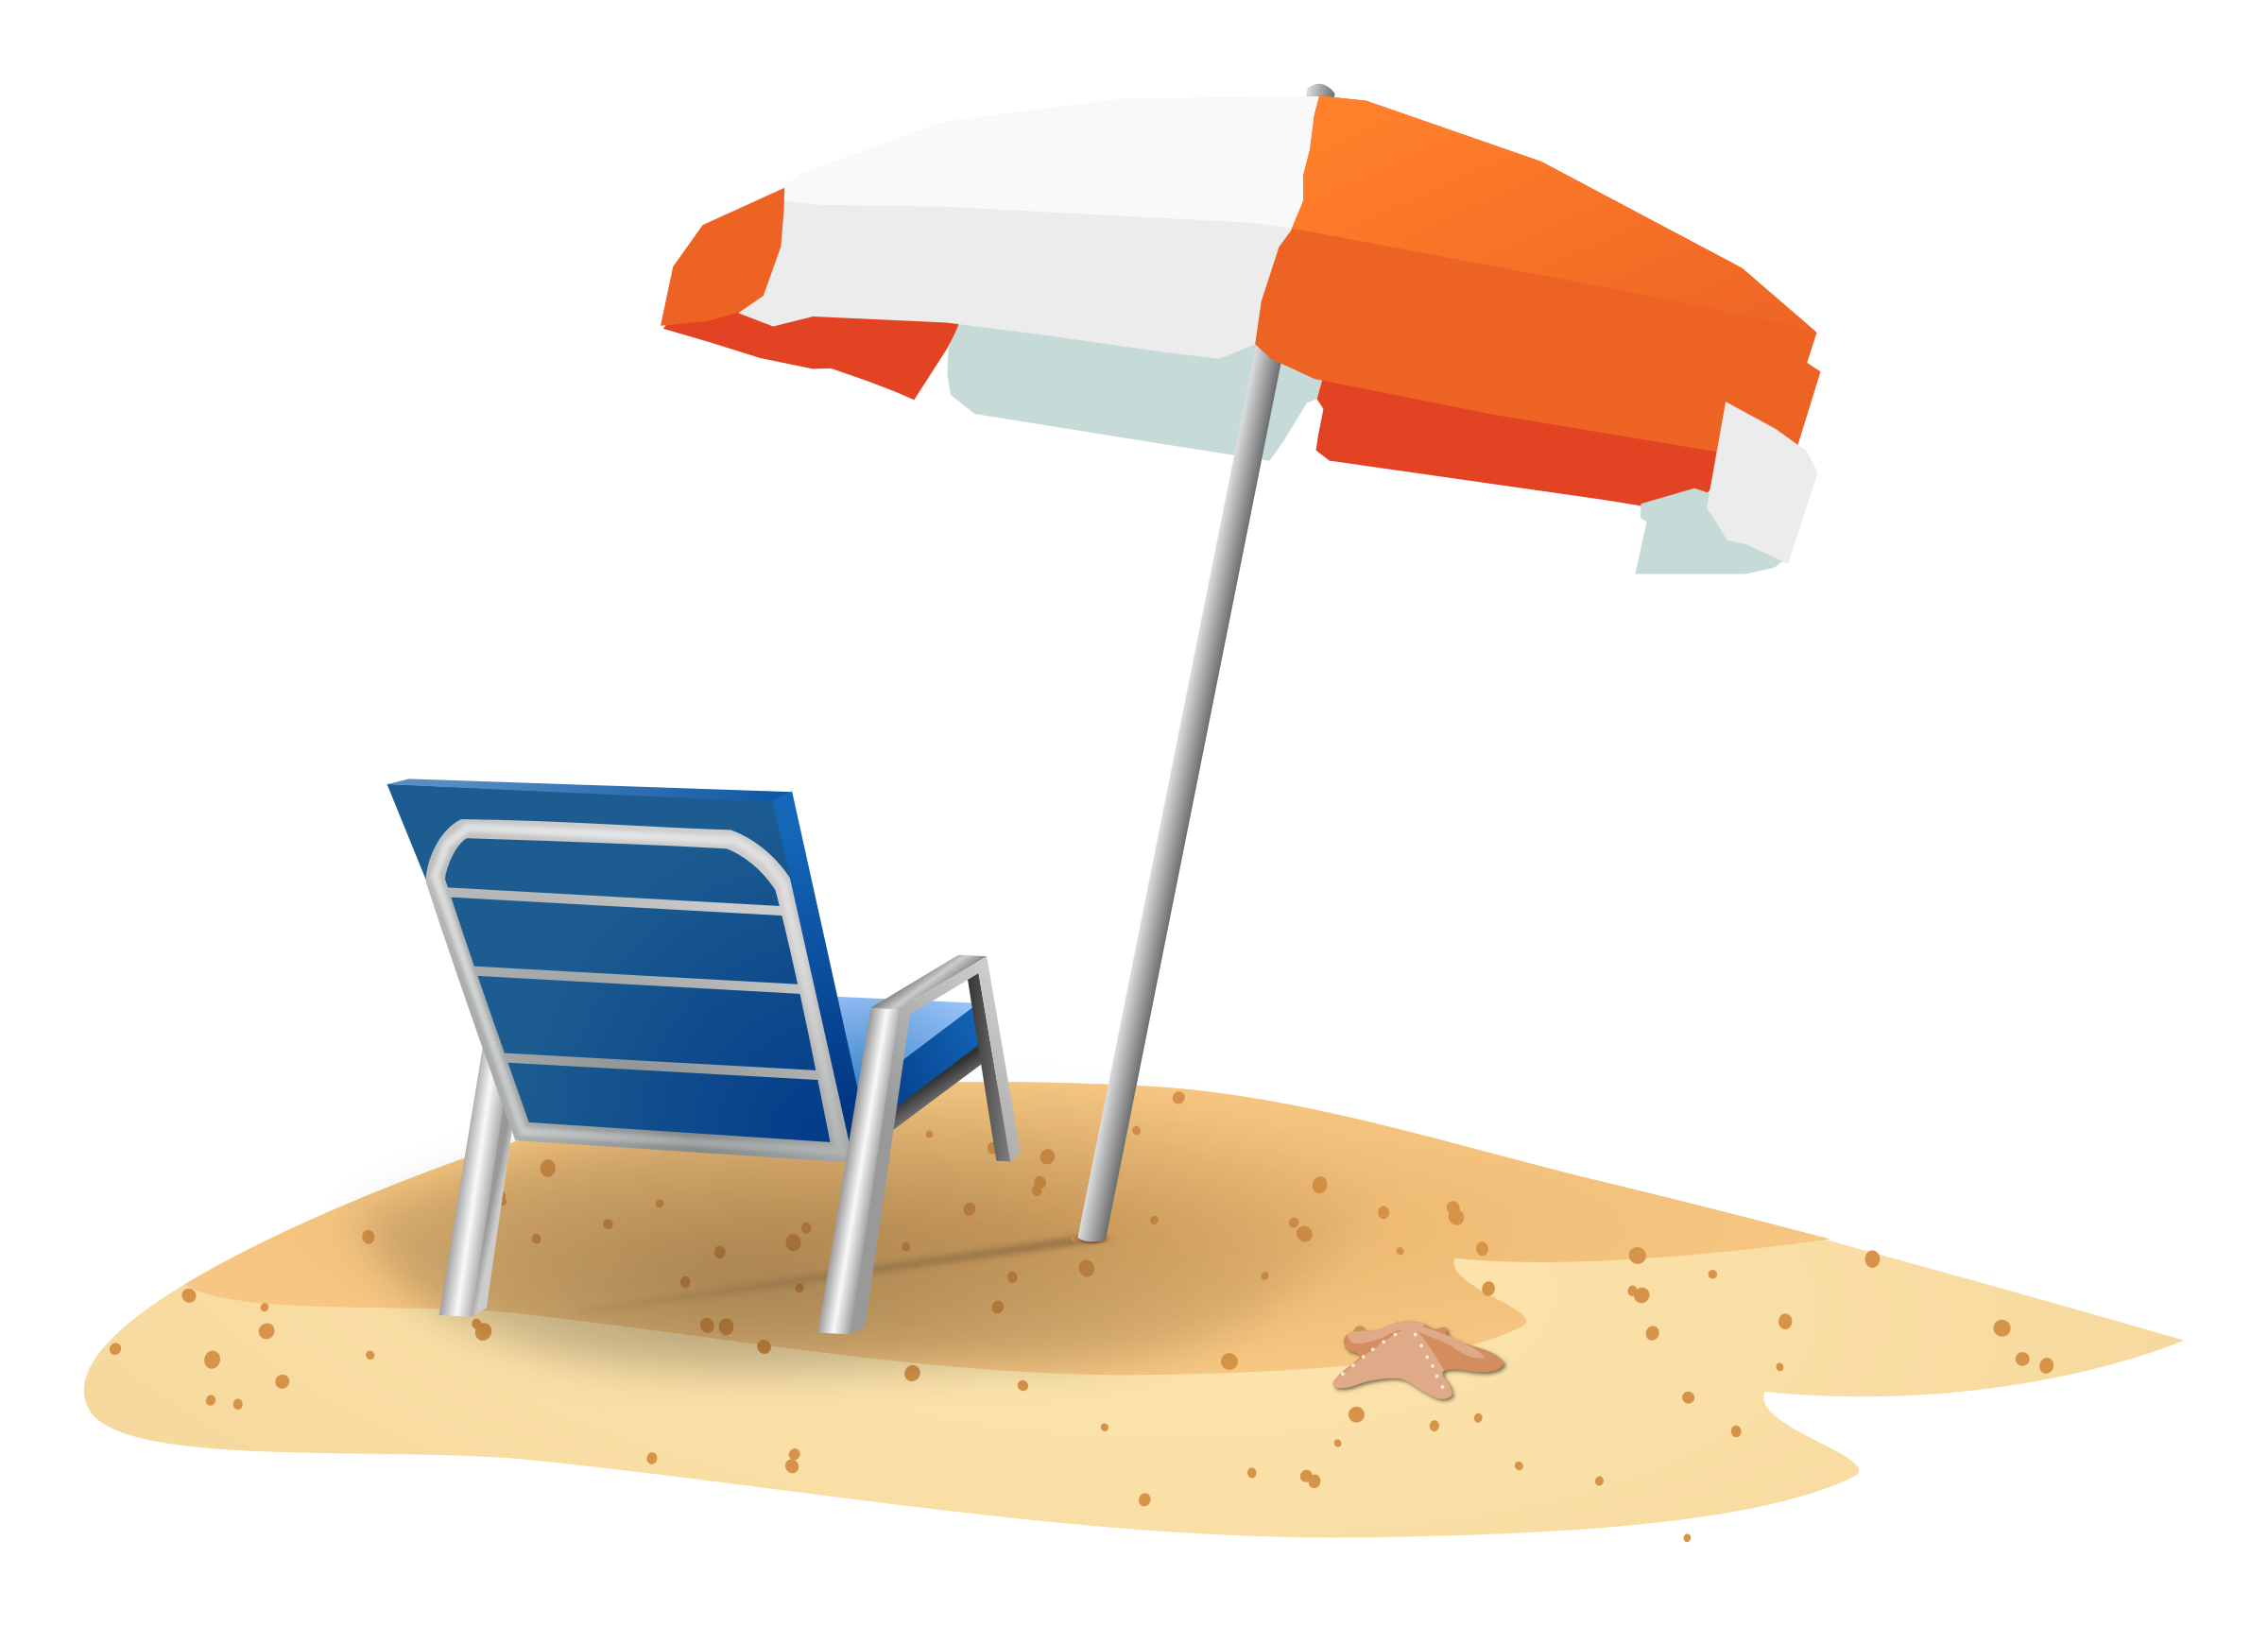 Transparent Png Beach Background image #41202